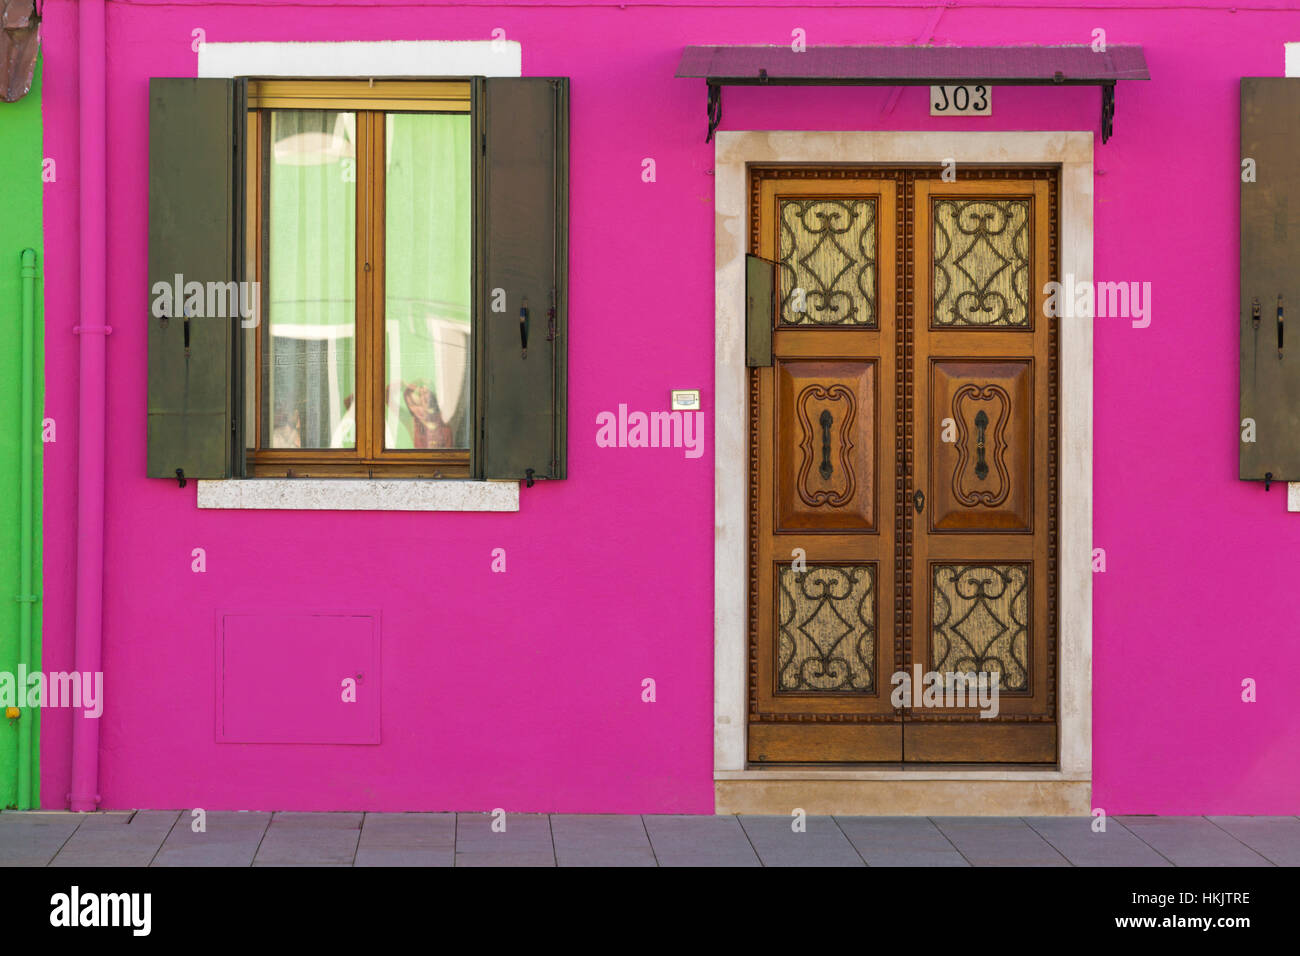 Ornate door and window shutters against bright purple pink wall of ...